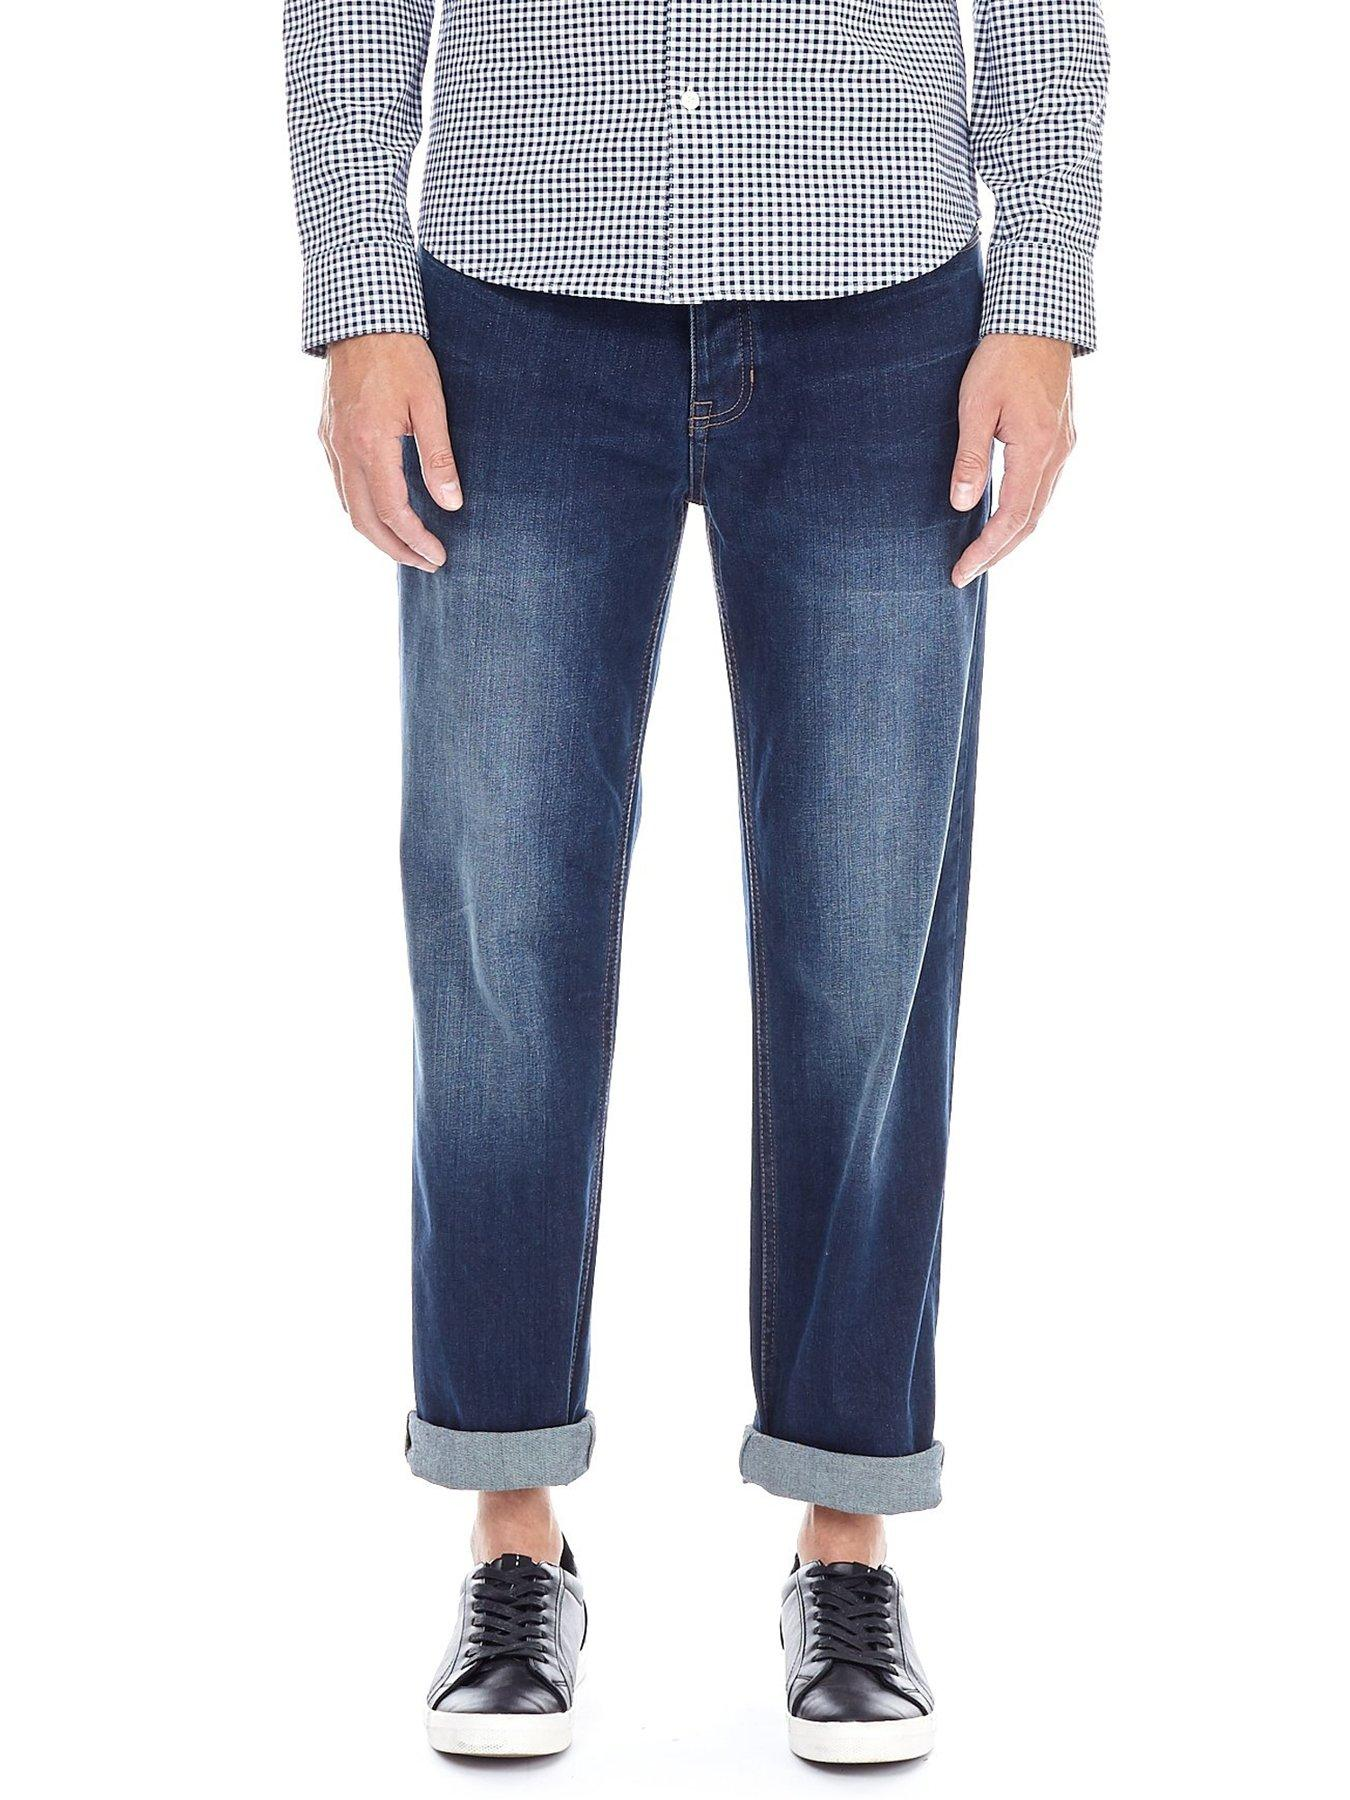 Just Cavalli Ripped Distressed Jeans with Leather Patches Blue $420-Now $128